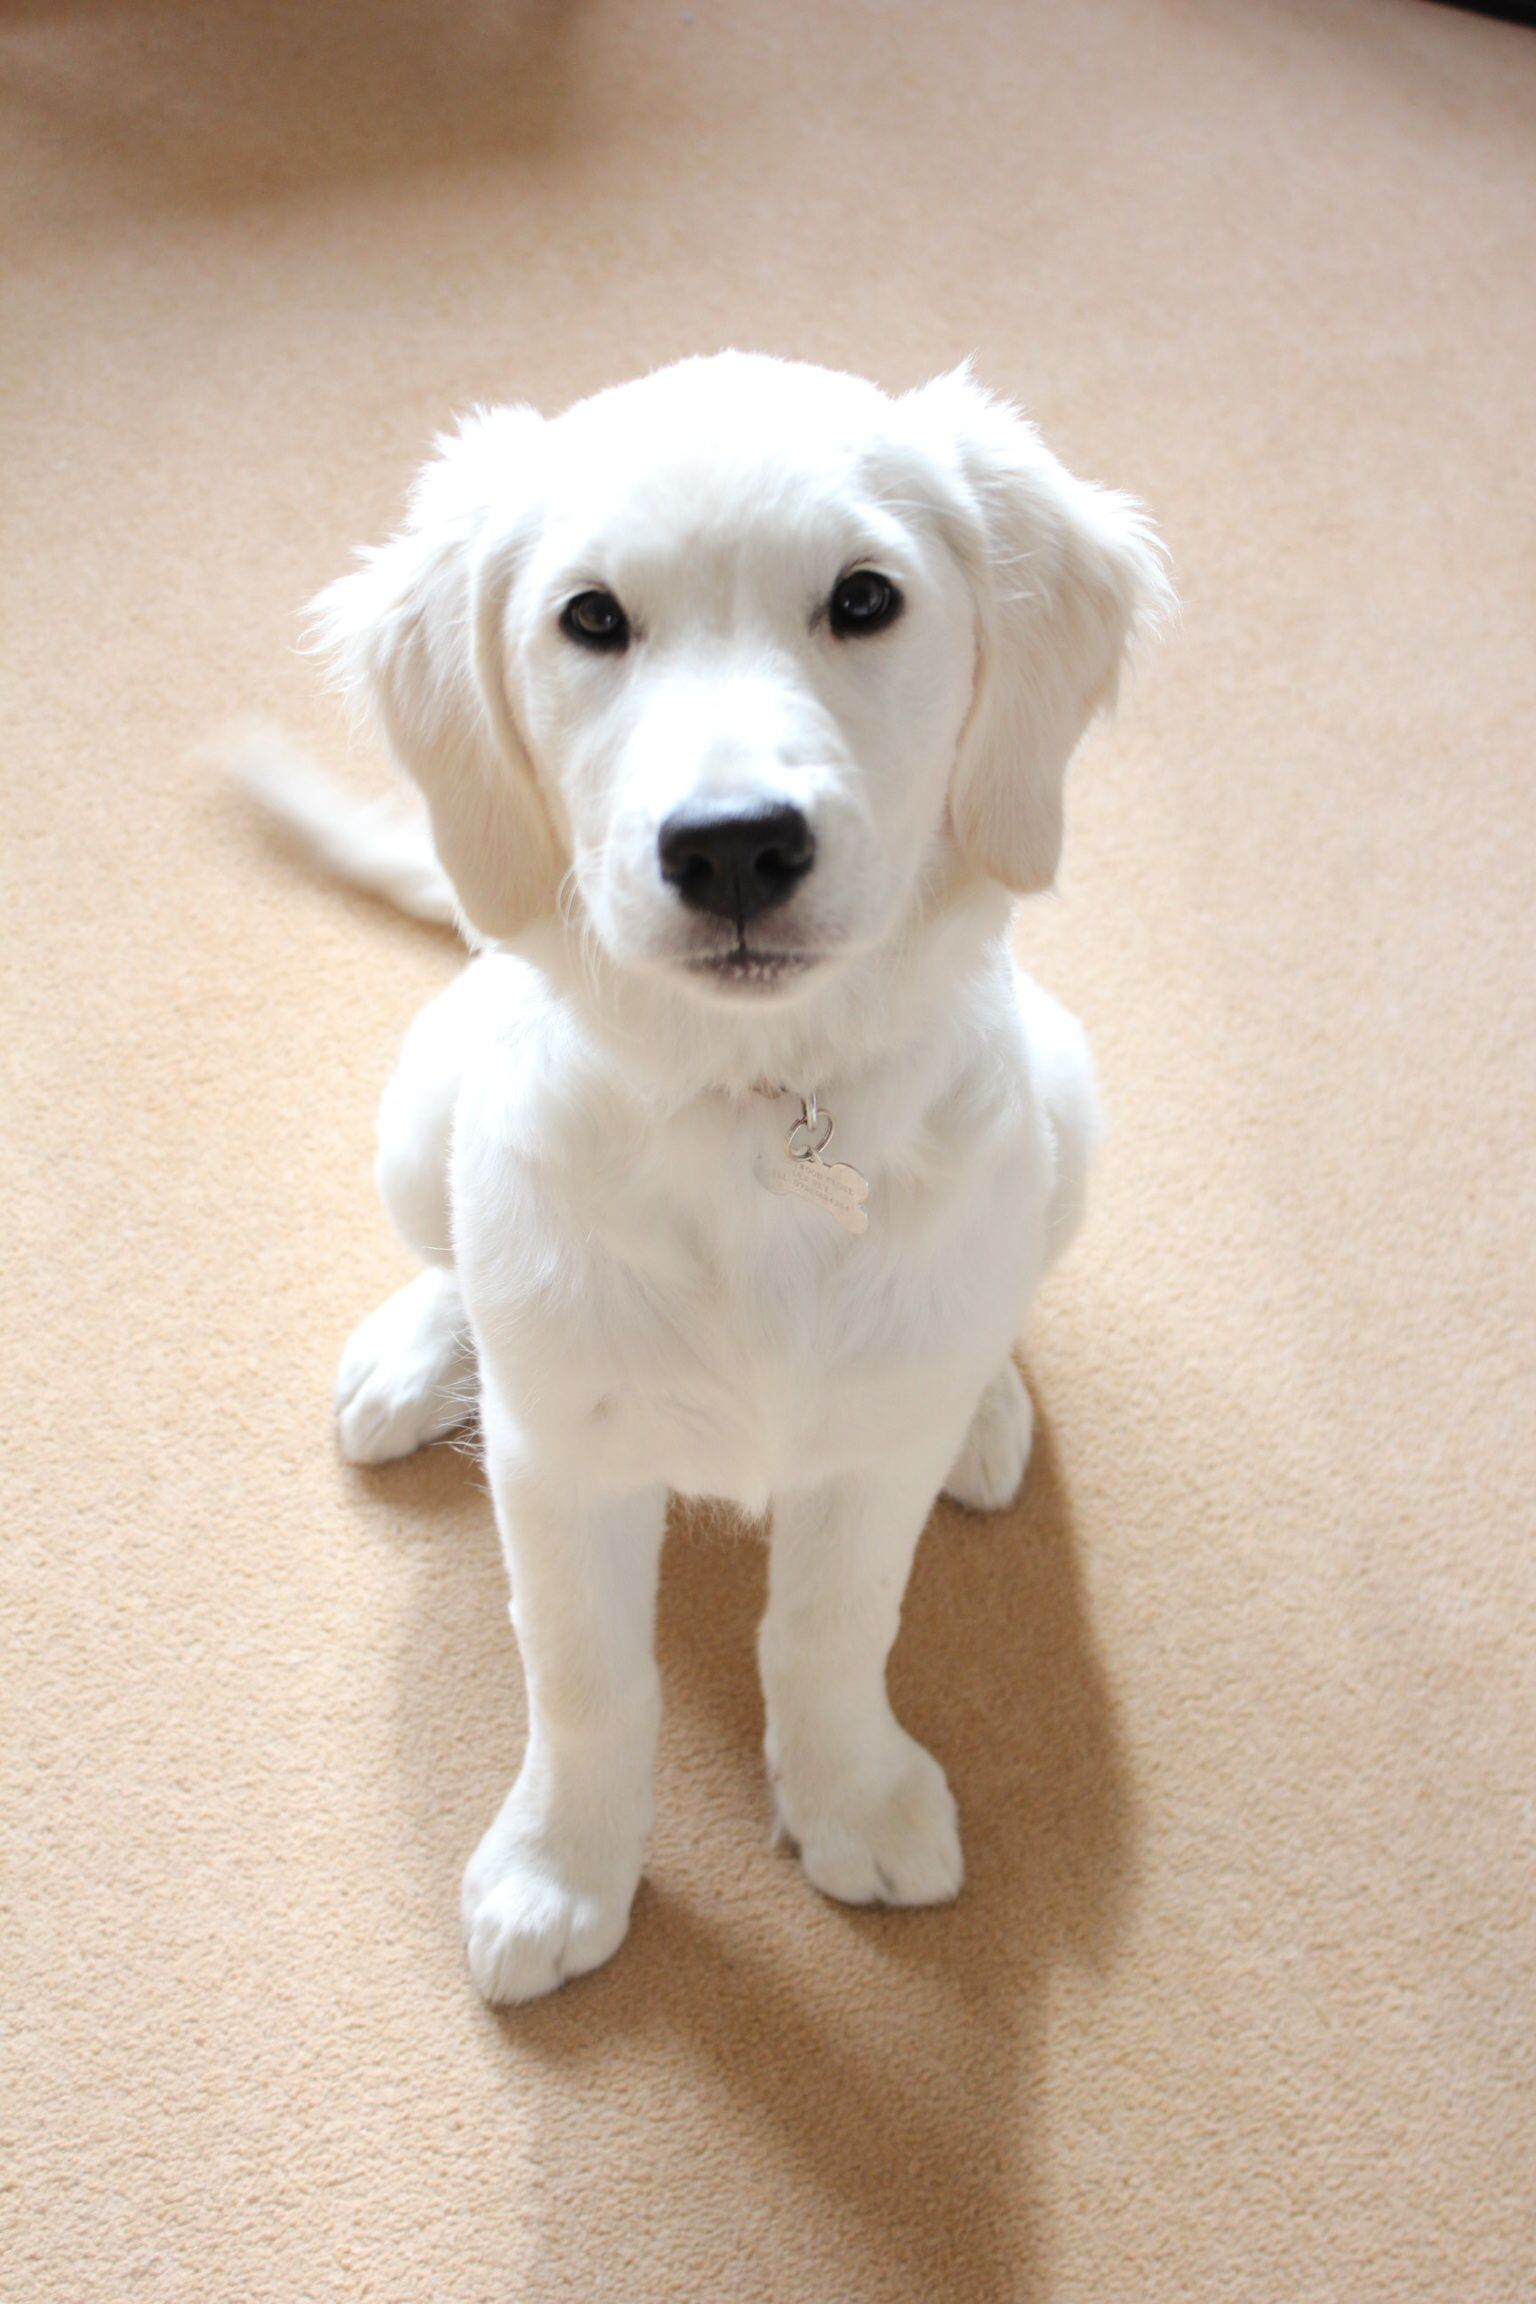 Beautiful 17 Week Old Golden Retriever Puppy English Cream And